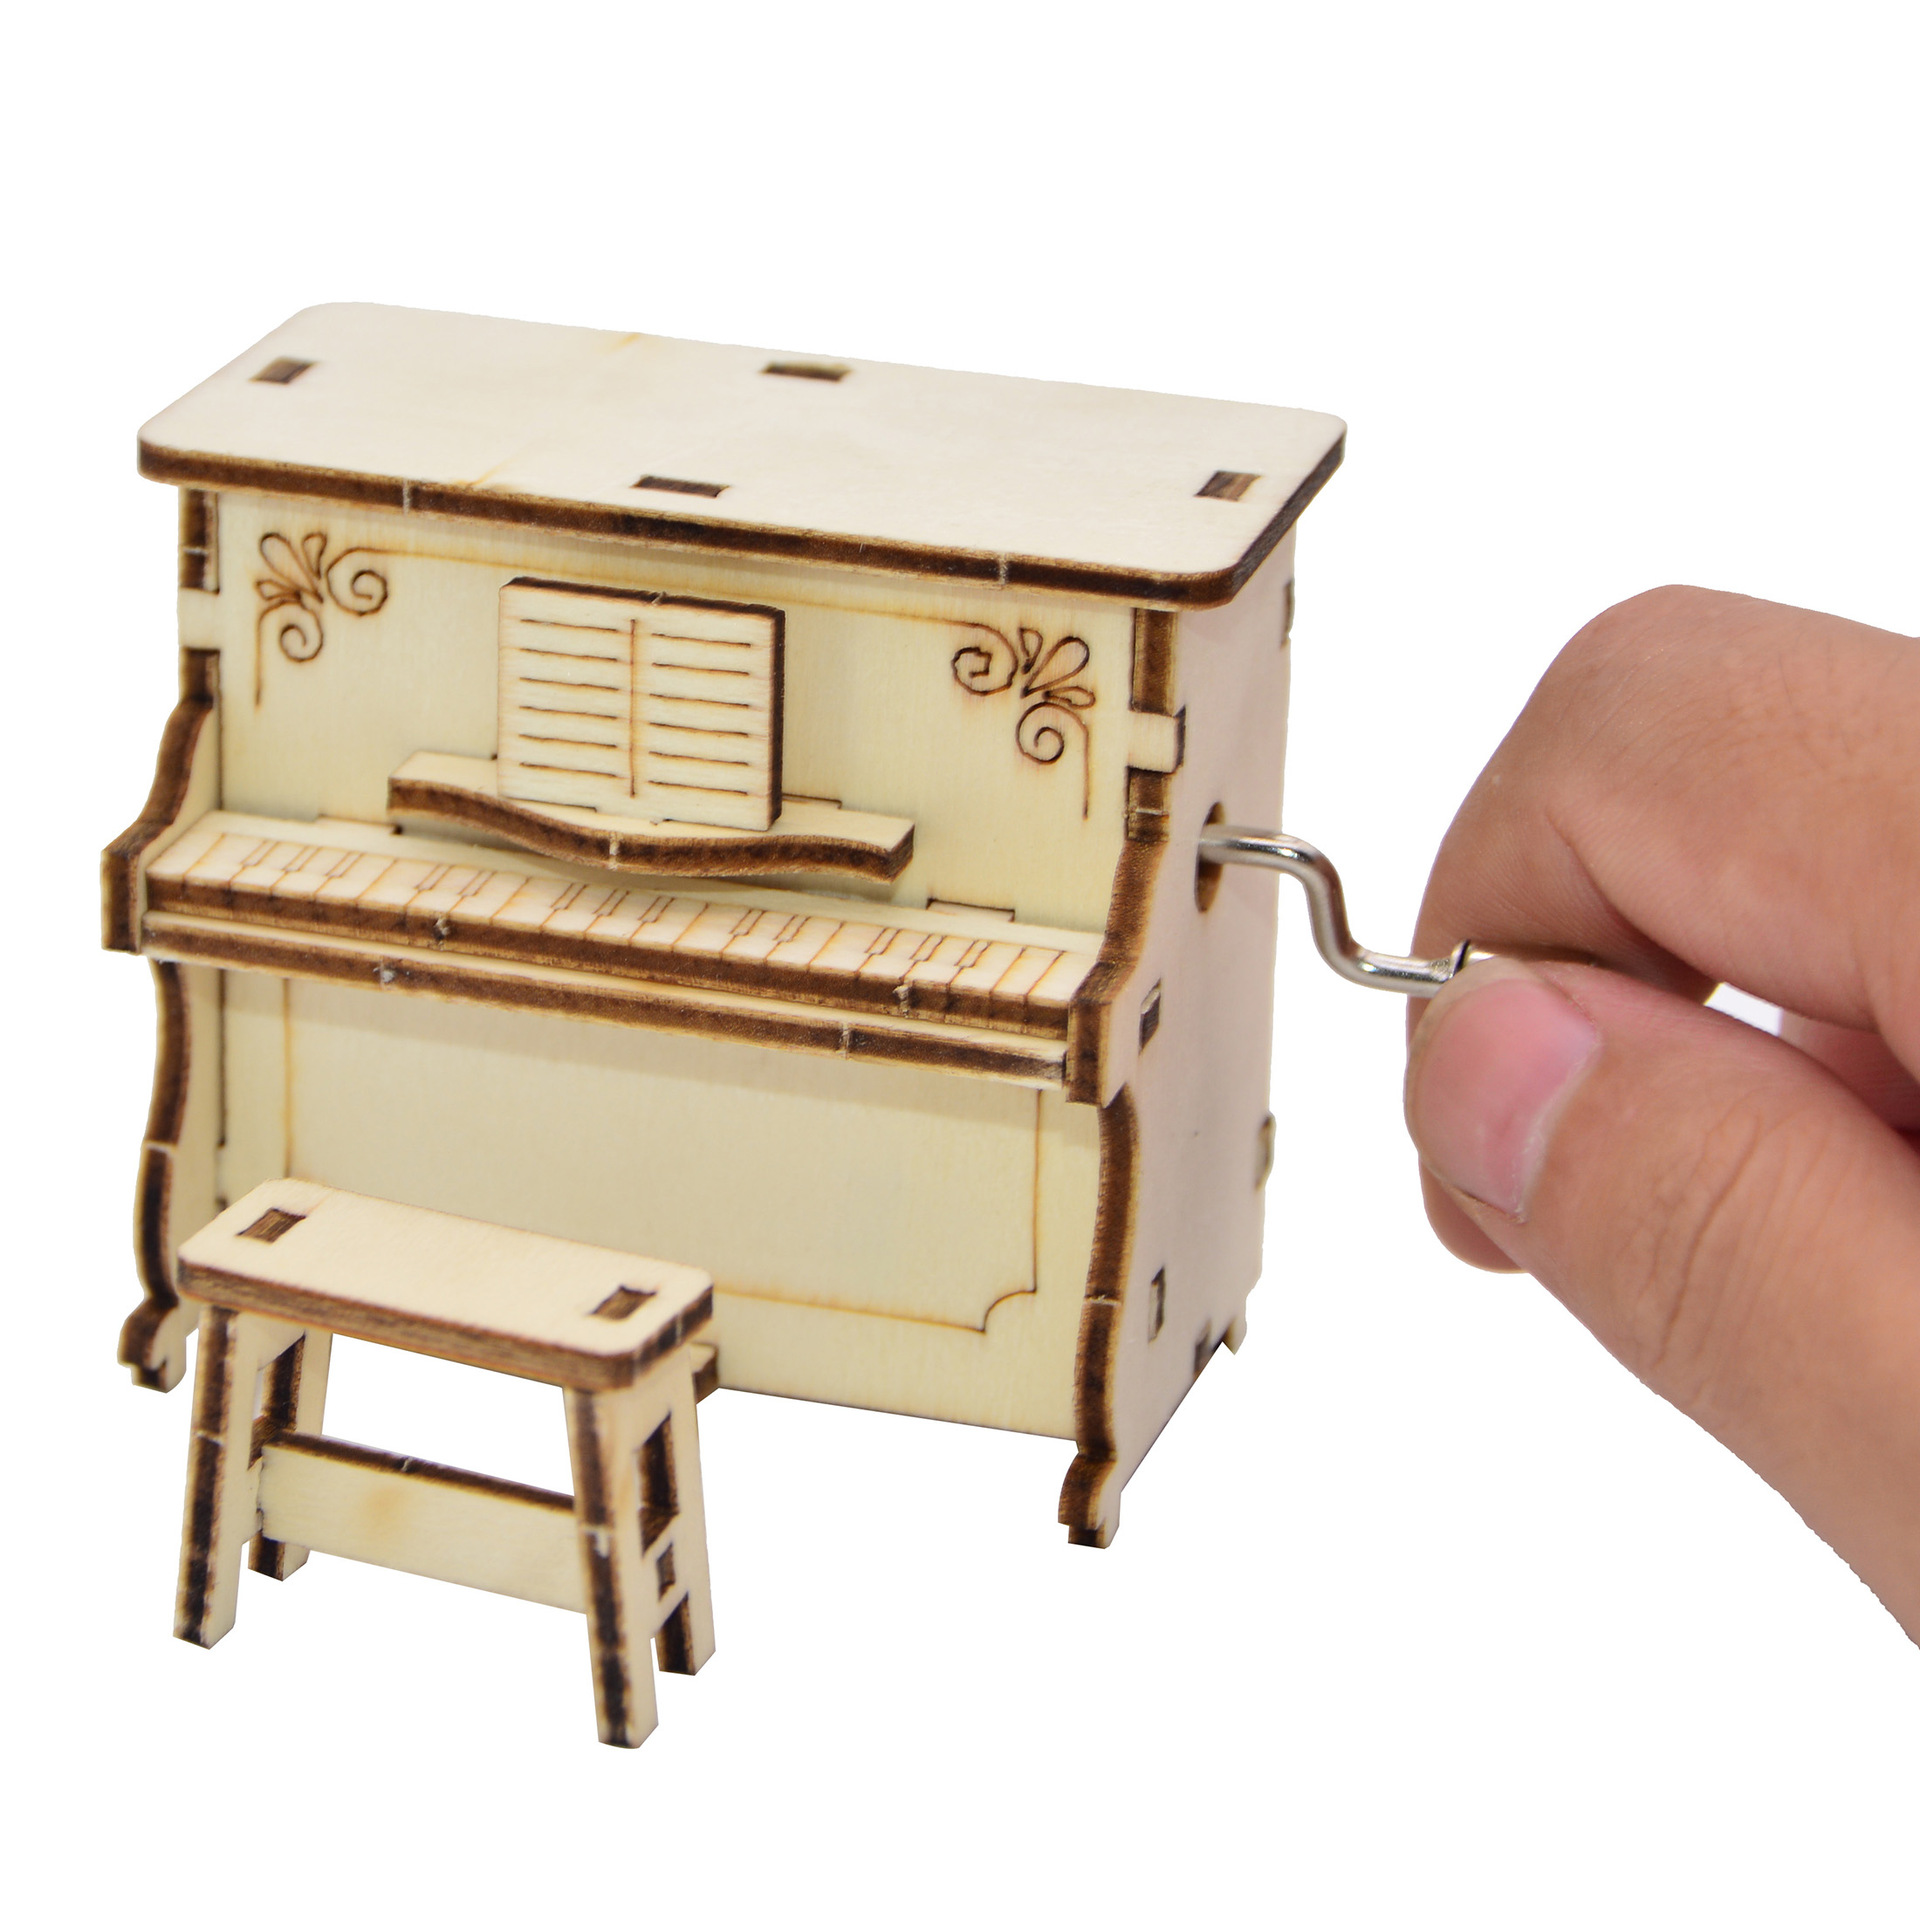 3D DIY Wooden Puzzle Wind Up Music Box Mini Desktop Decor Piano Hand Cranked Music Box Play Castle In The Sky Gift For Kids